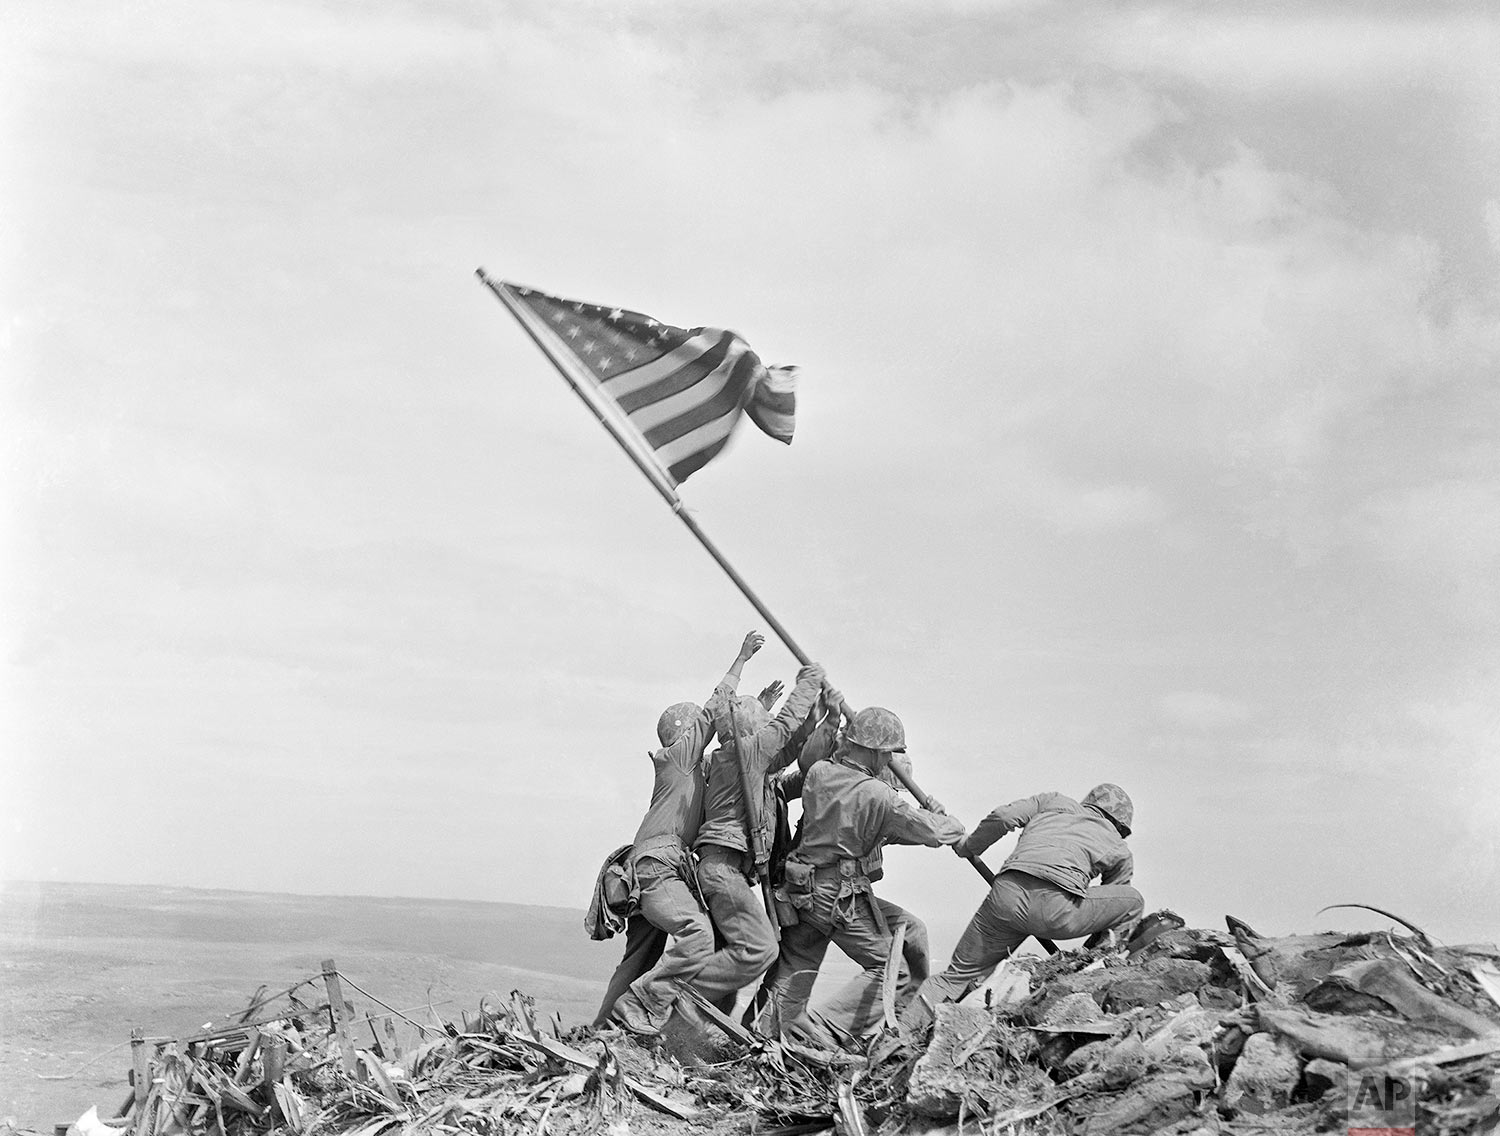 U.S. Marines of the 28th Regiment, 5th Division, raise the American flag atop Mt. Suribachi, Iwo Jima, Japan, Feb 23, 1945. (AP Photo/Joe Rosenthal)